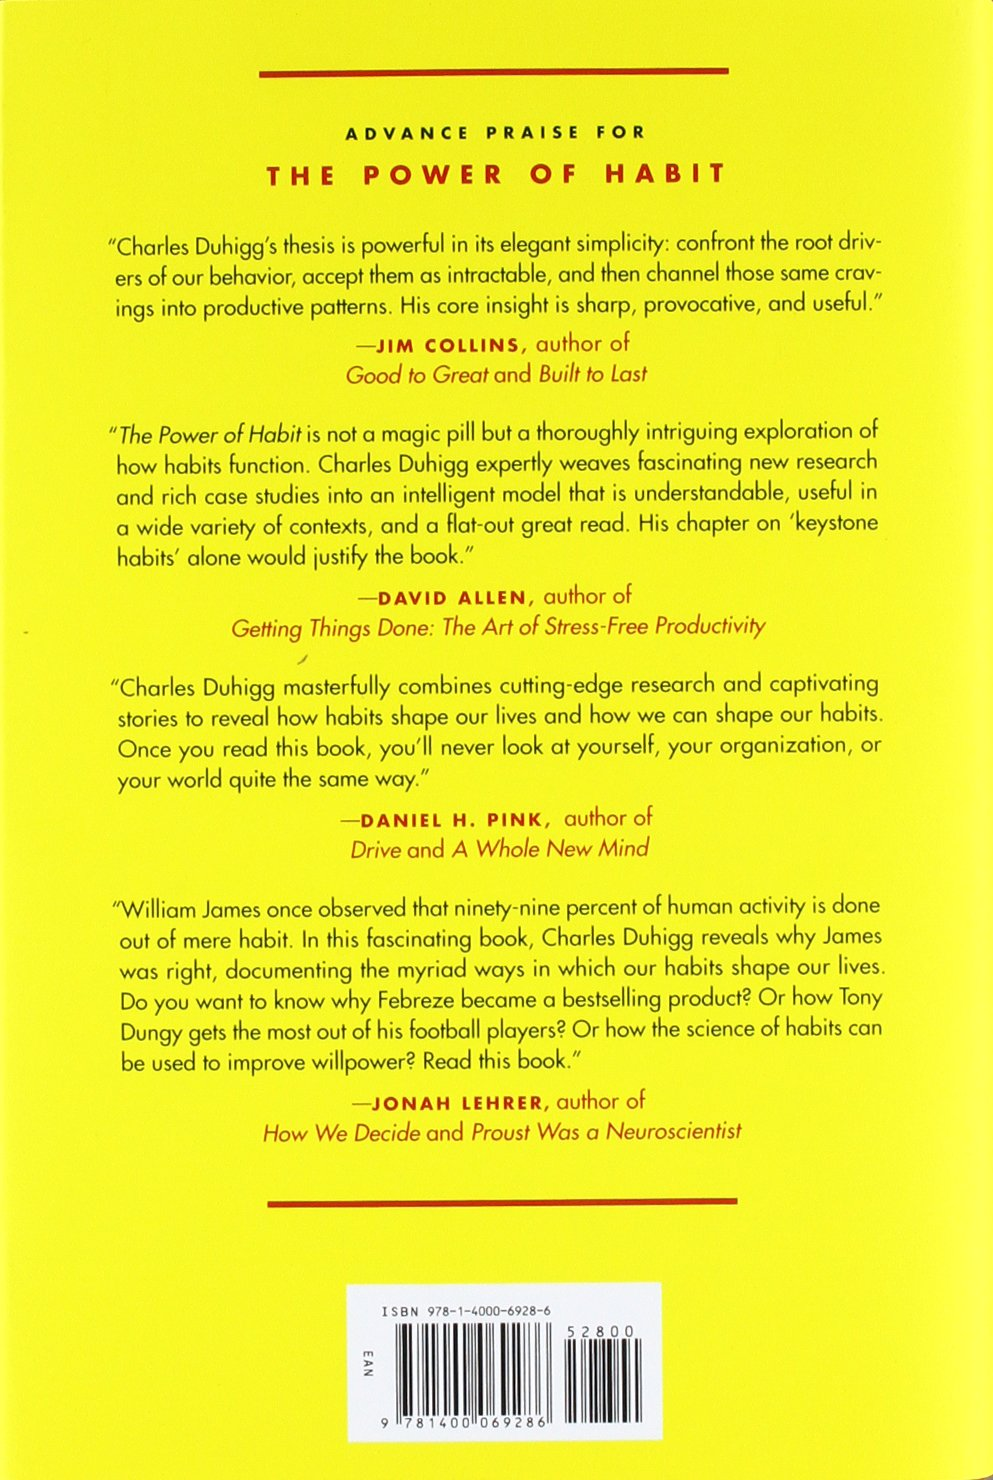 Amazon fr - The Power of Habit: Why We Do What We Do in Life